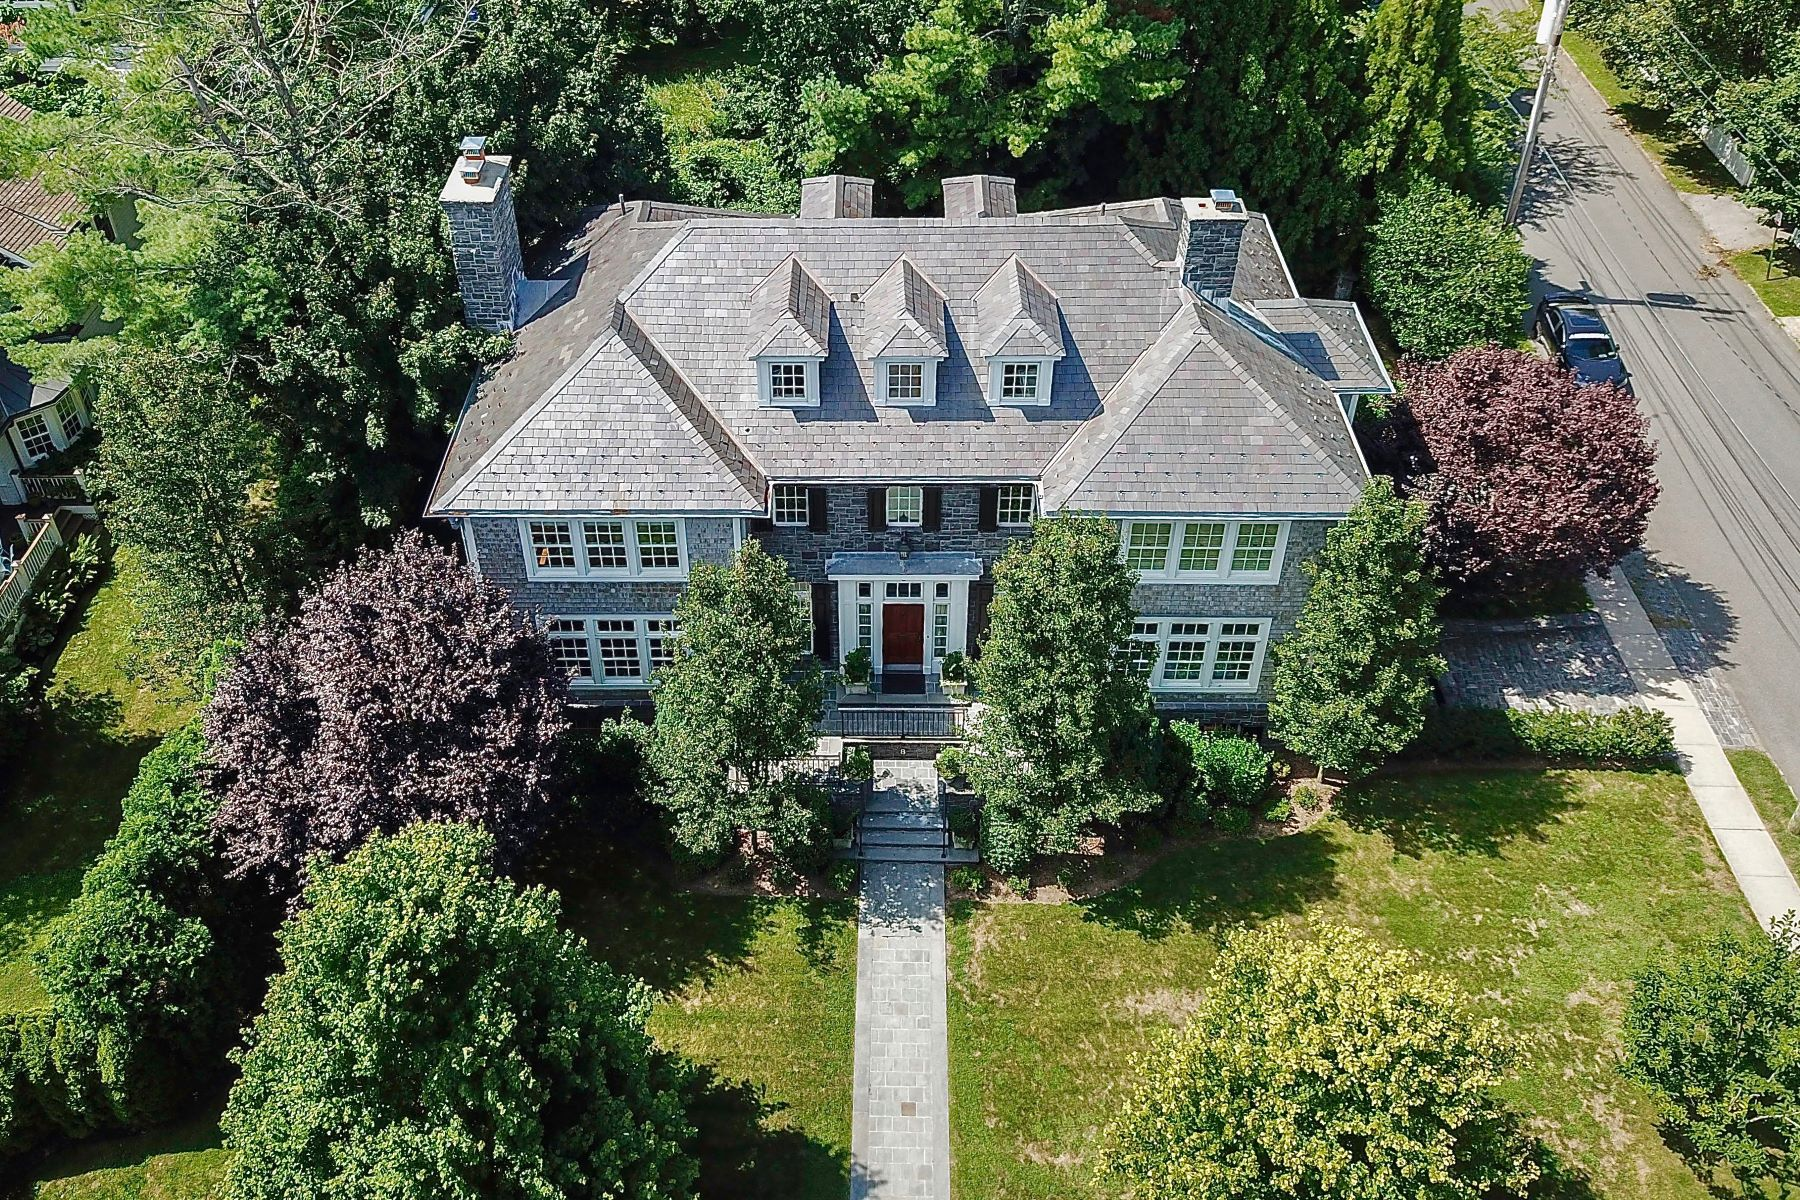 Single Family Home for Sale at 8 Grove Avenue 8 Grove Ave Larchmont, New York 10538 United States